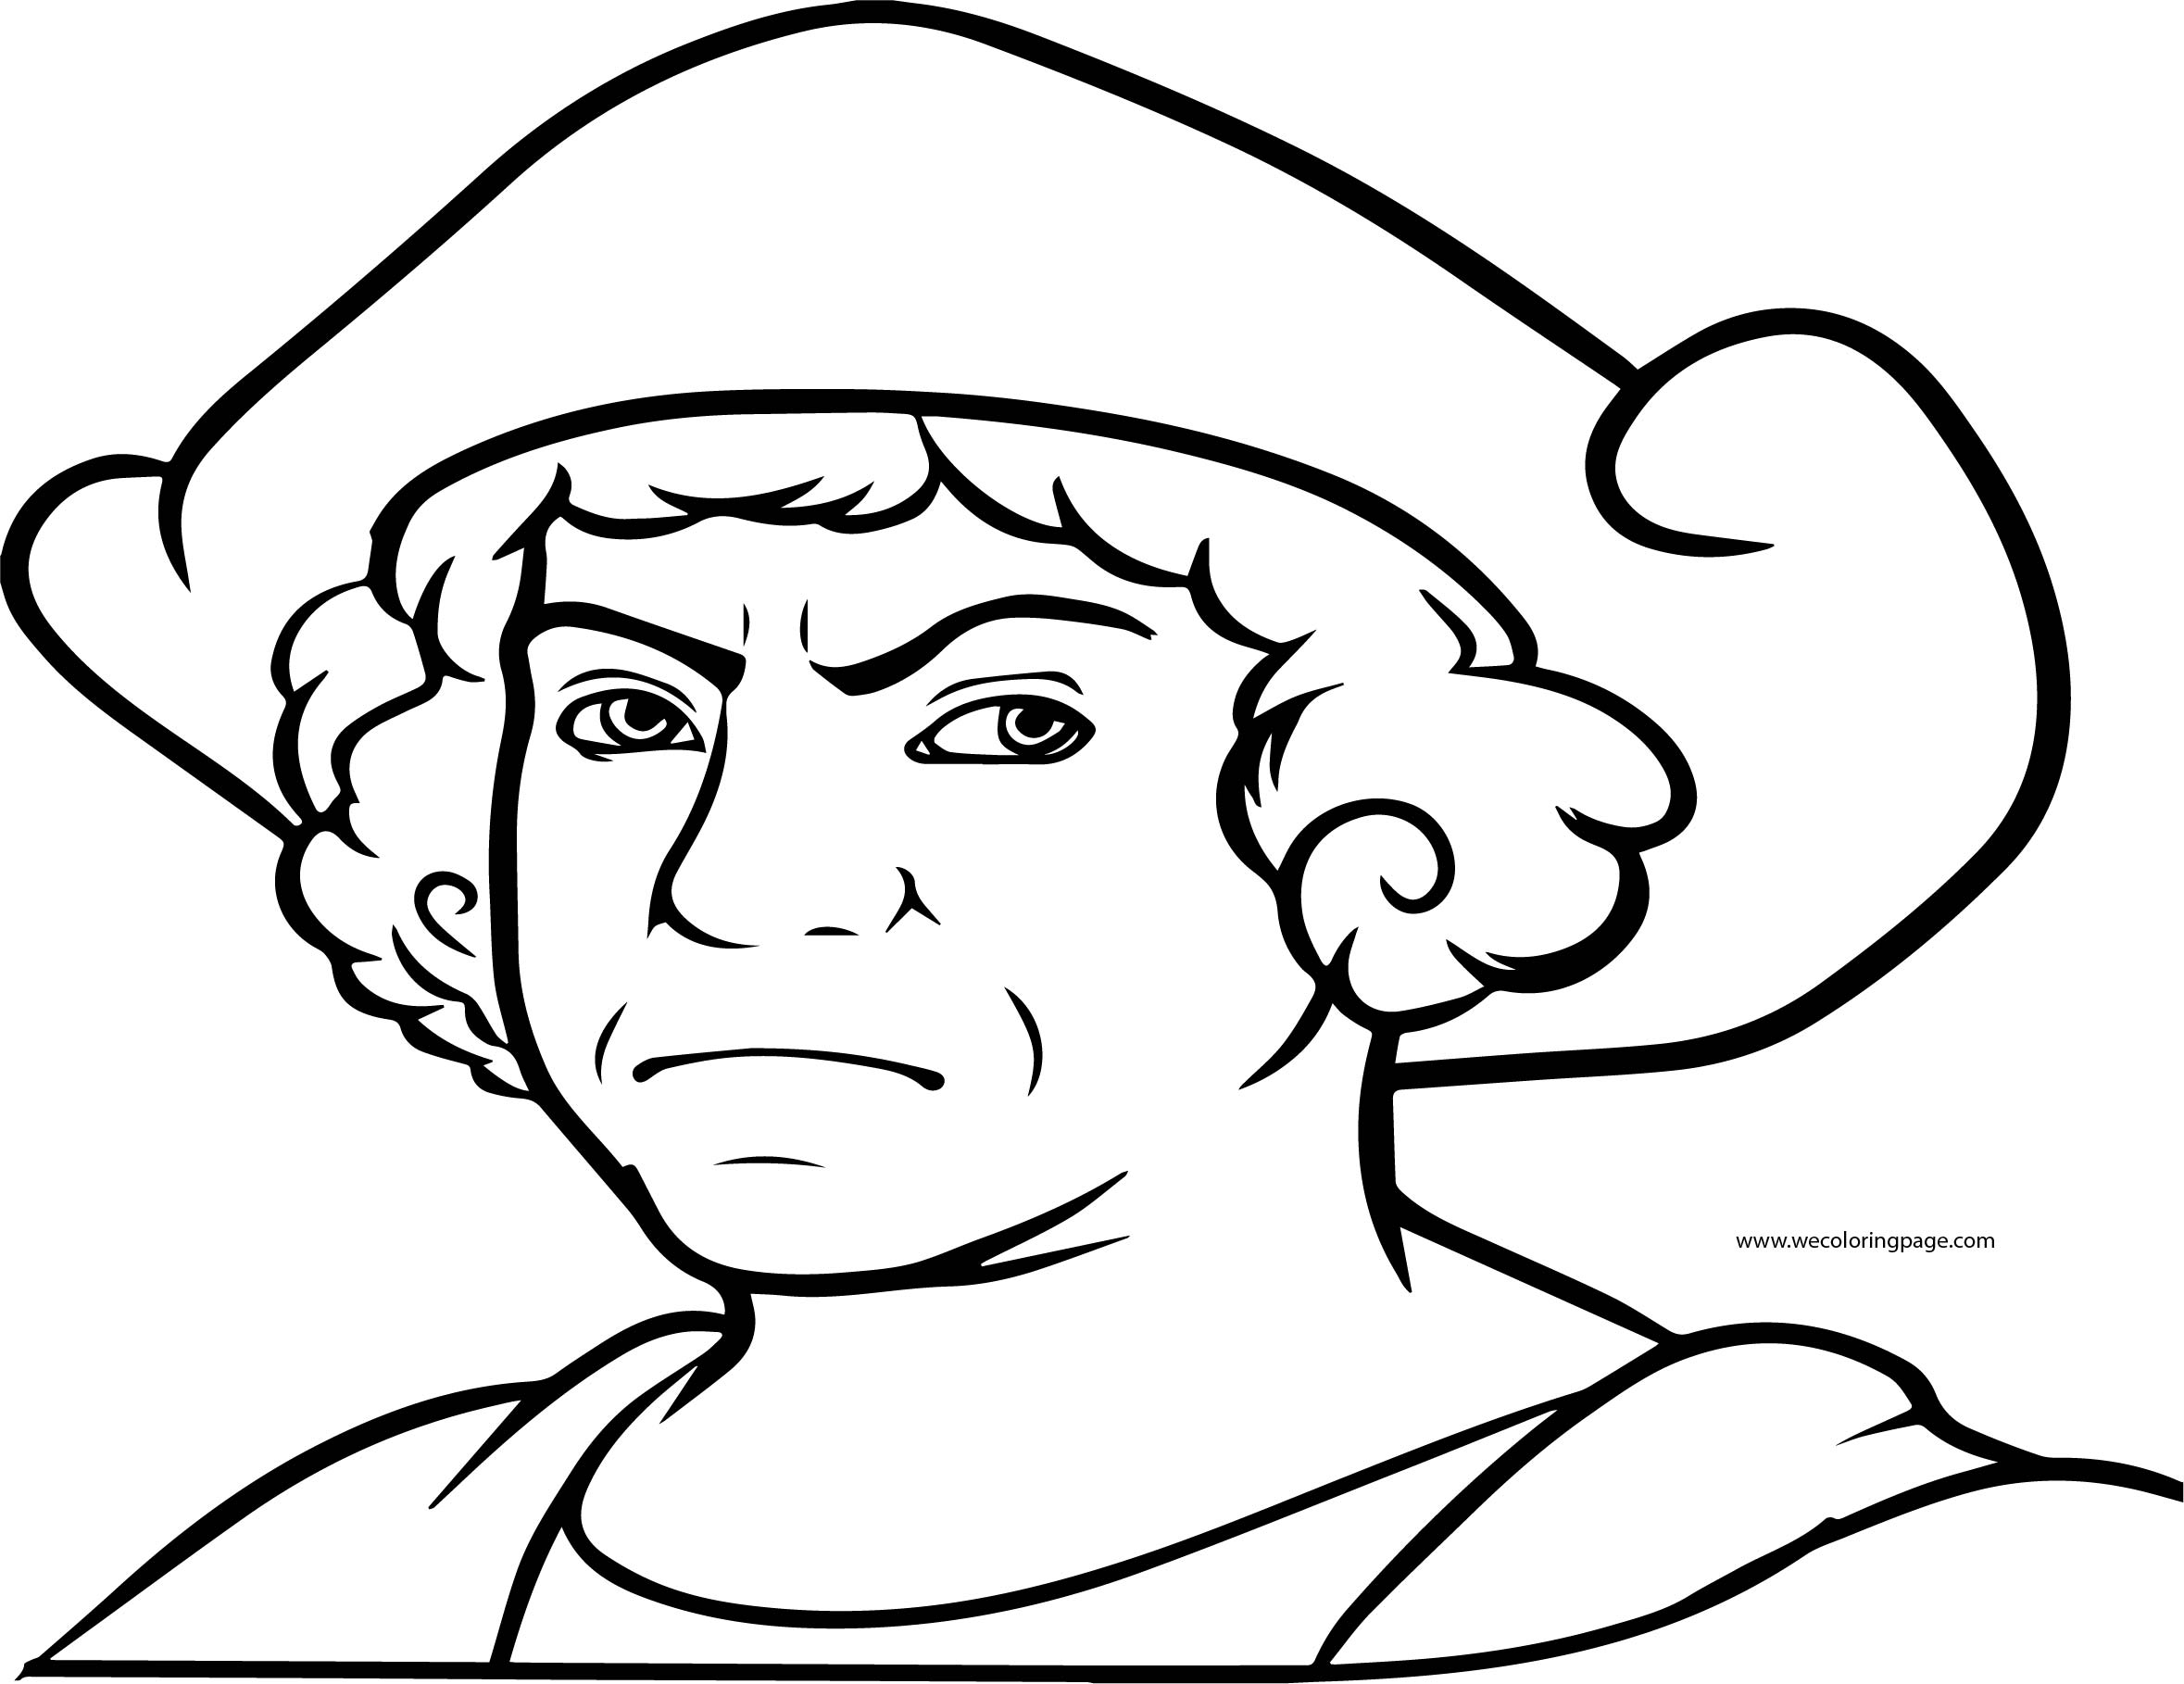 Christopher Columbus Coloring Page Angry | Wecoloringpage.com